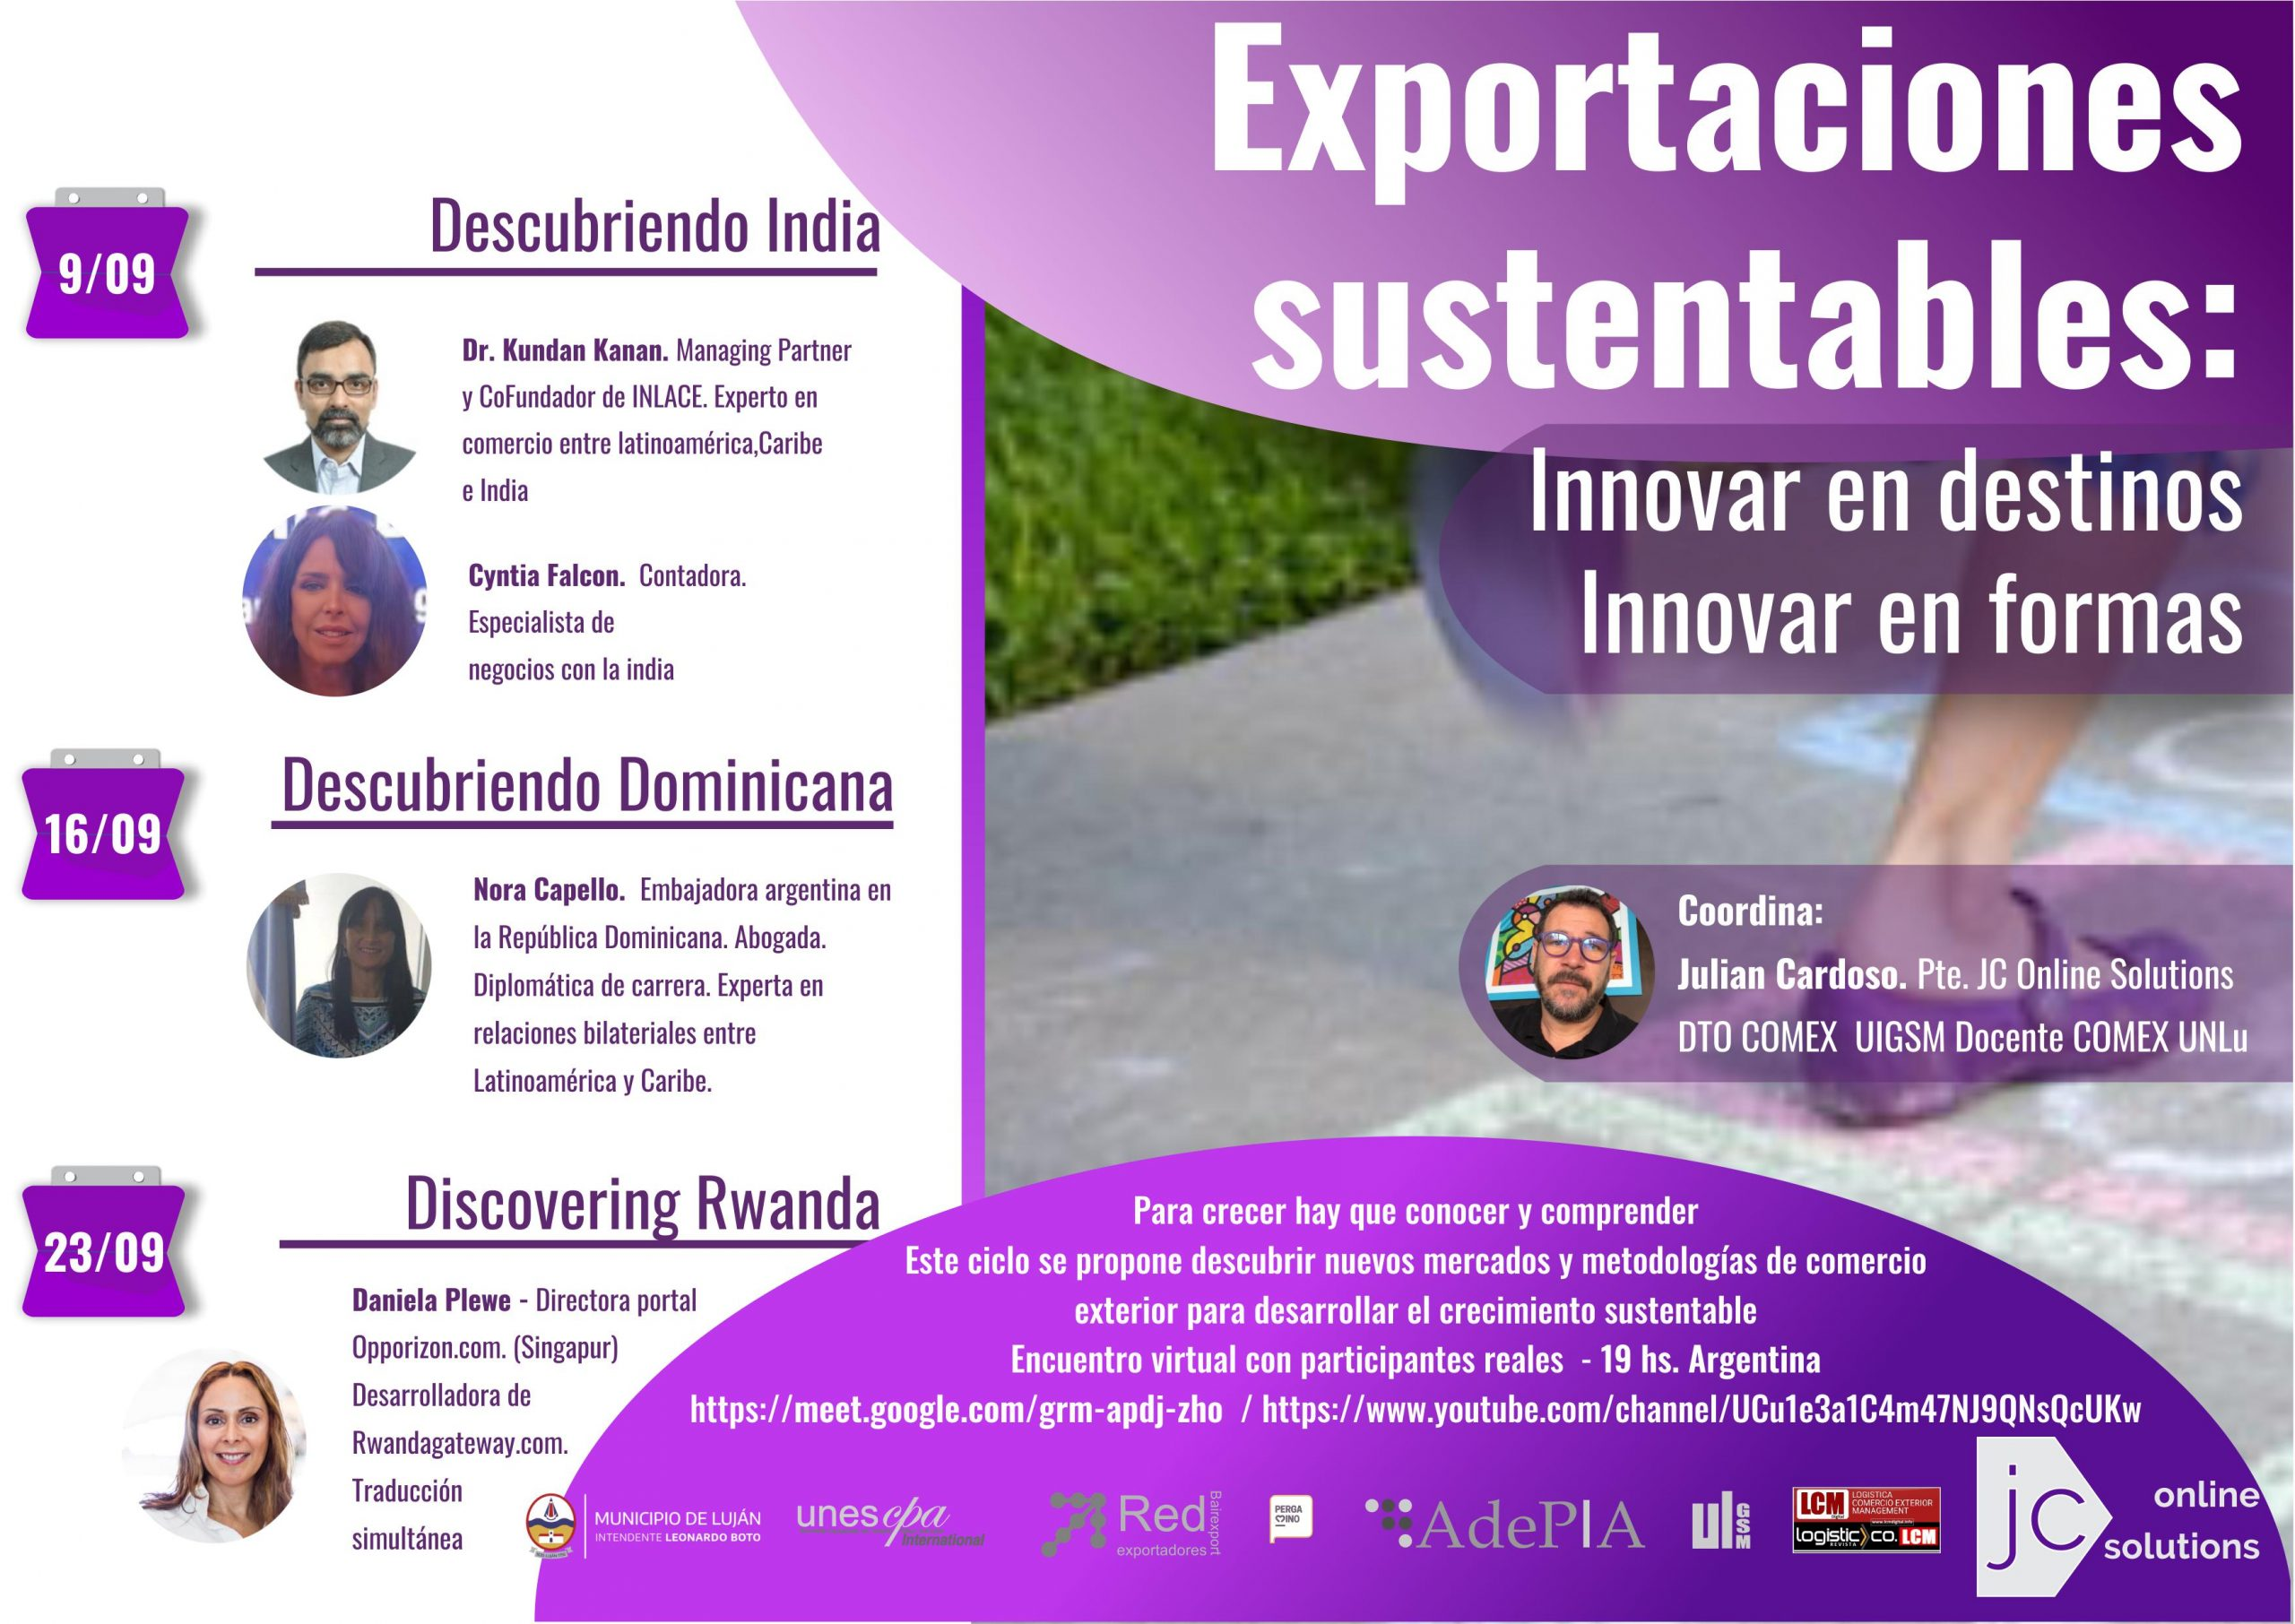 Sustainable exports. Innovating in destinations. Innovating in ways.